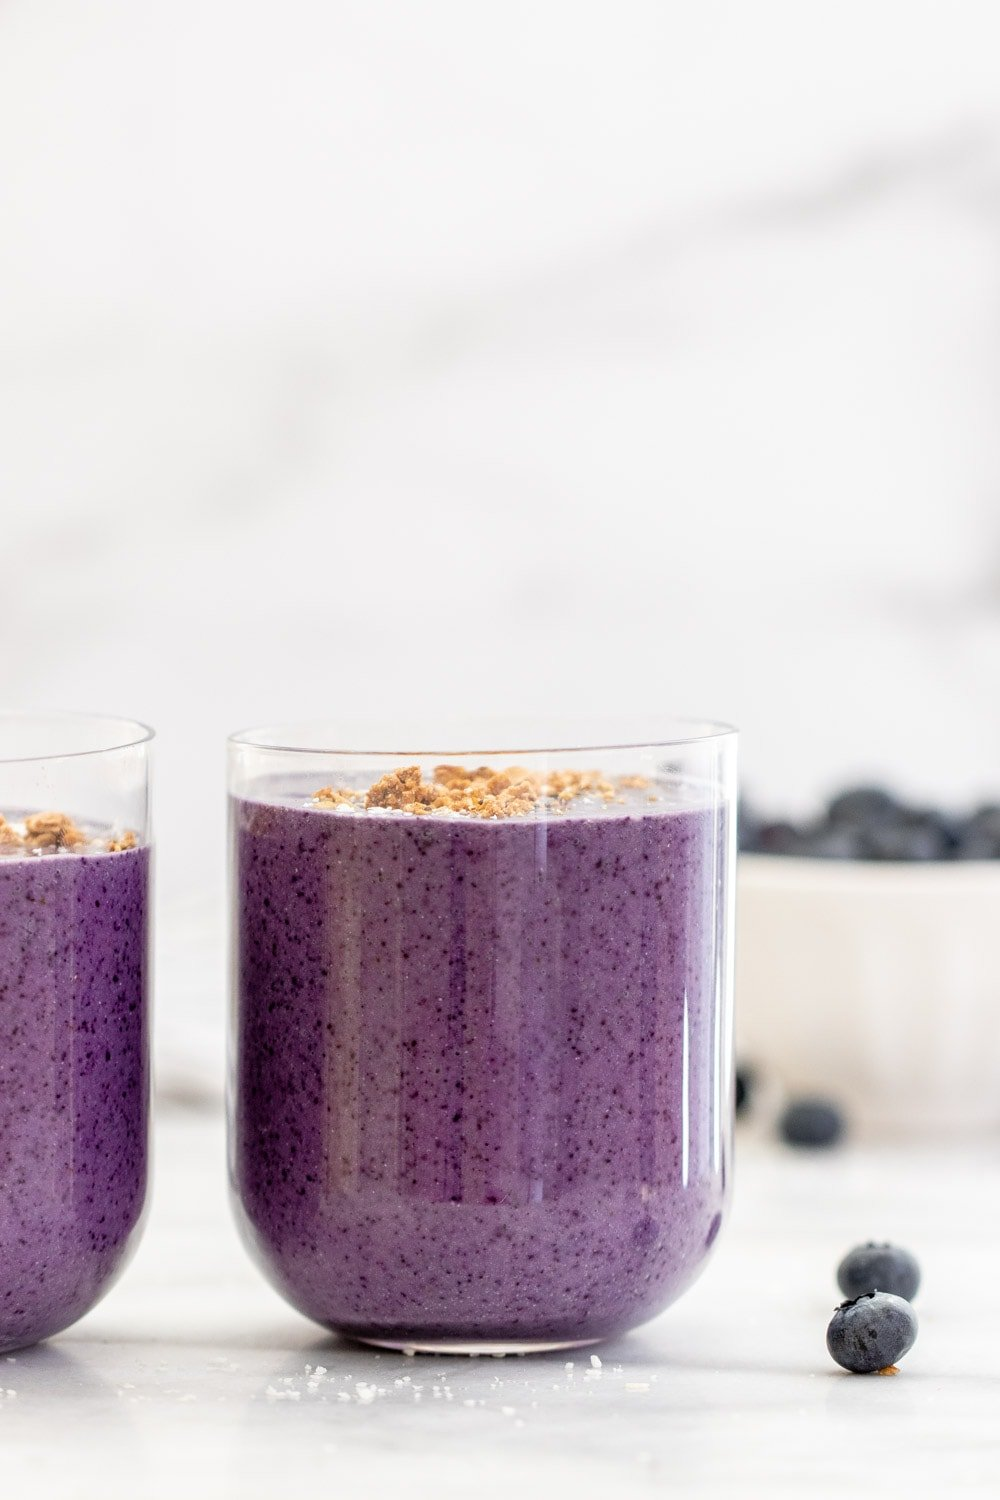 Blueberry avocado smoothie in a short glass.